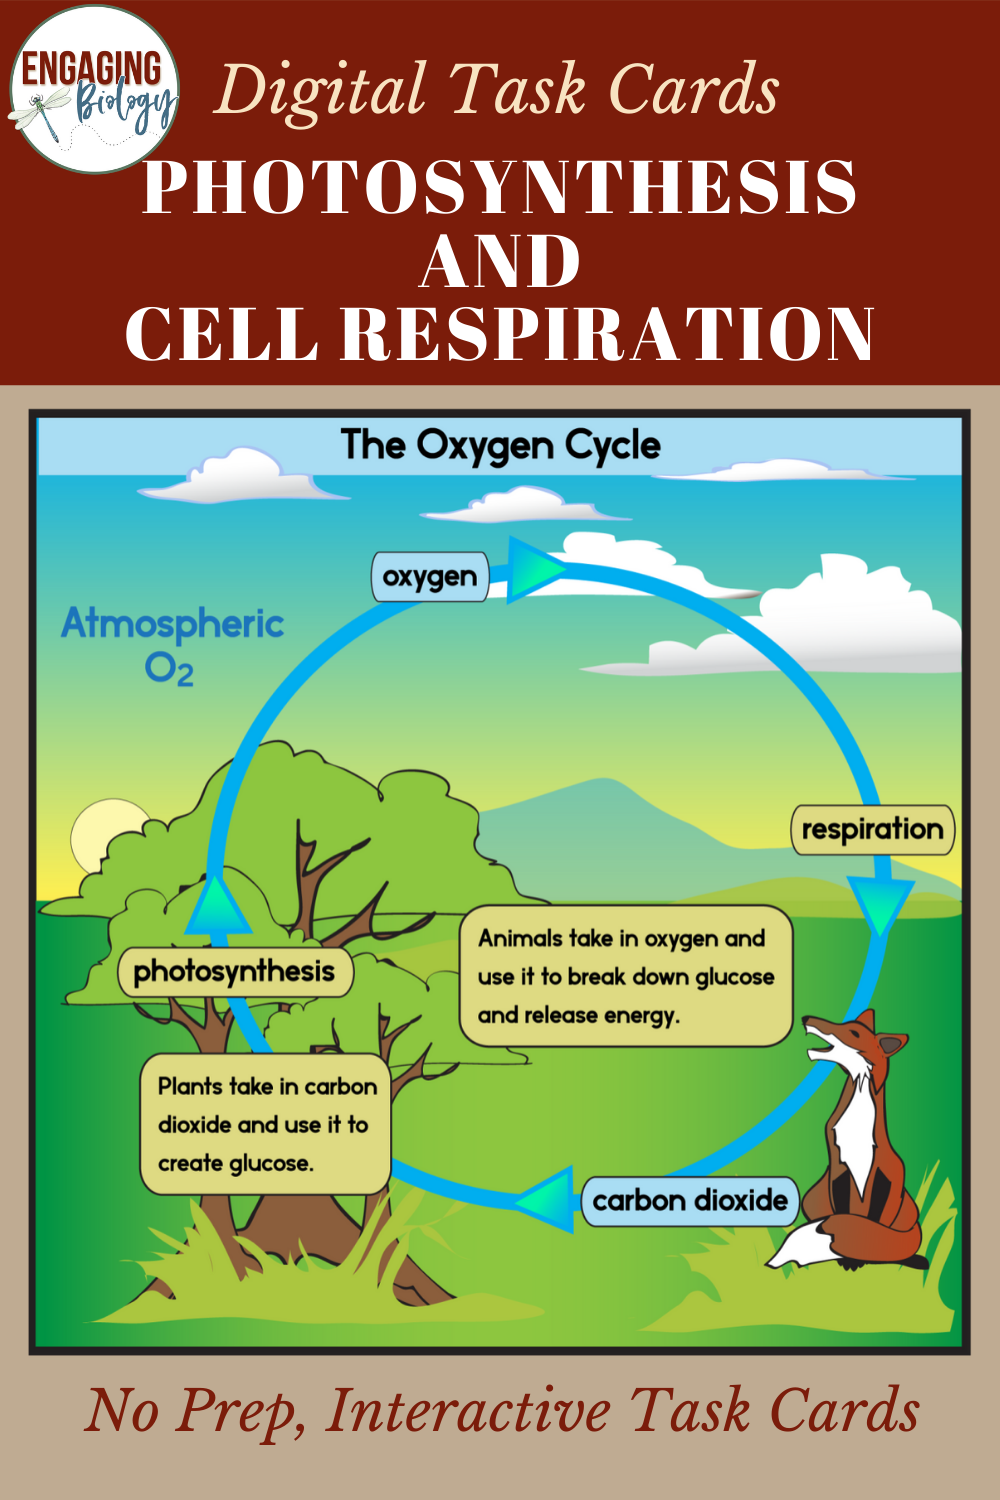 Photosynthesis and Cell Respiration Digital Task Cards in